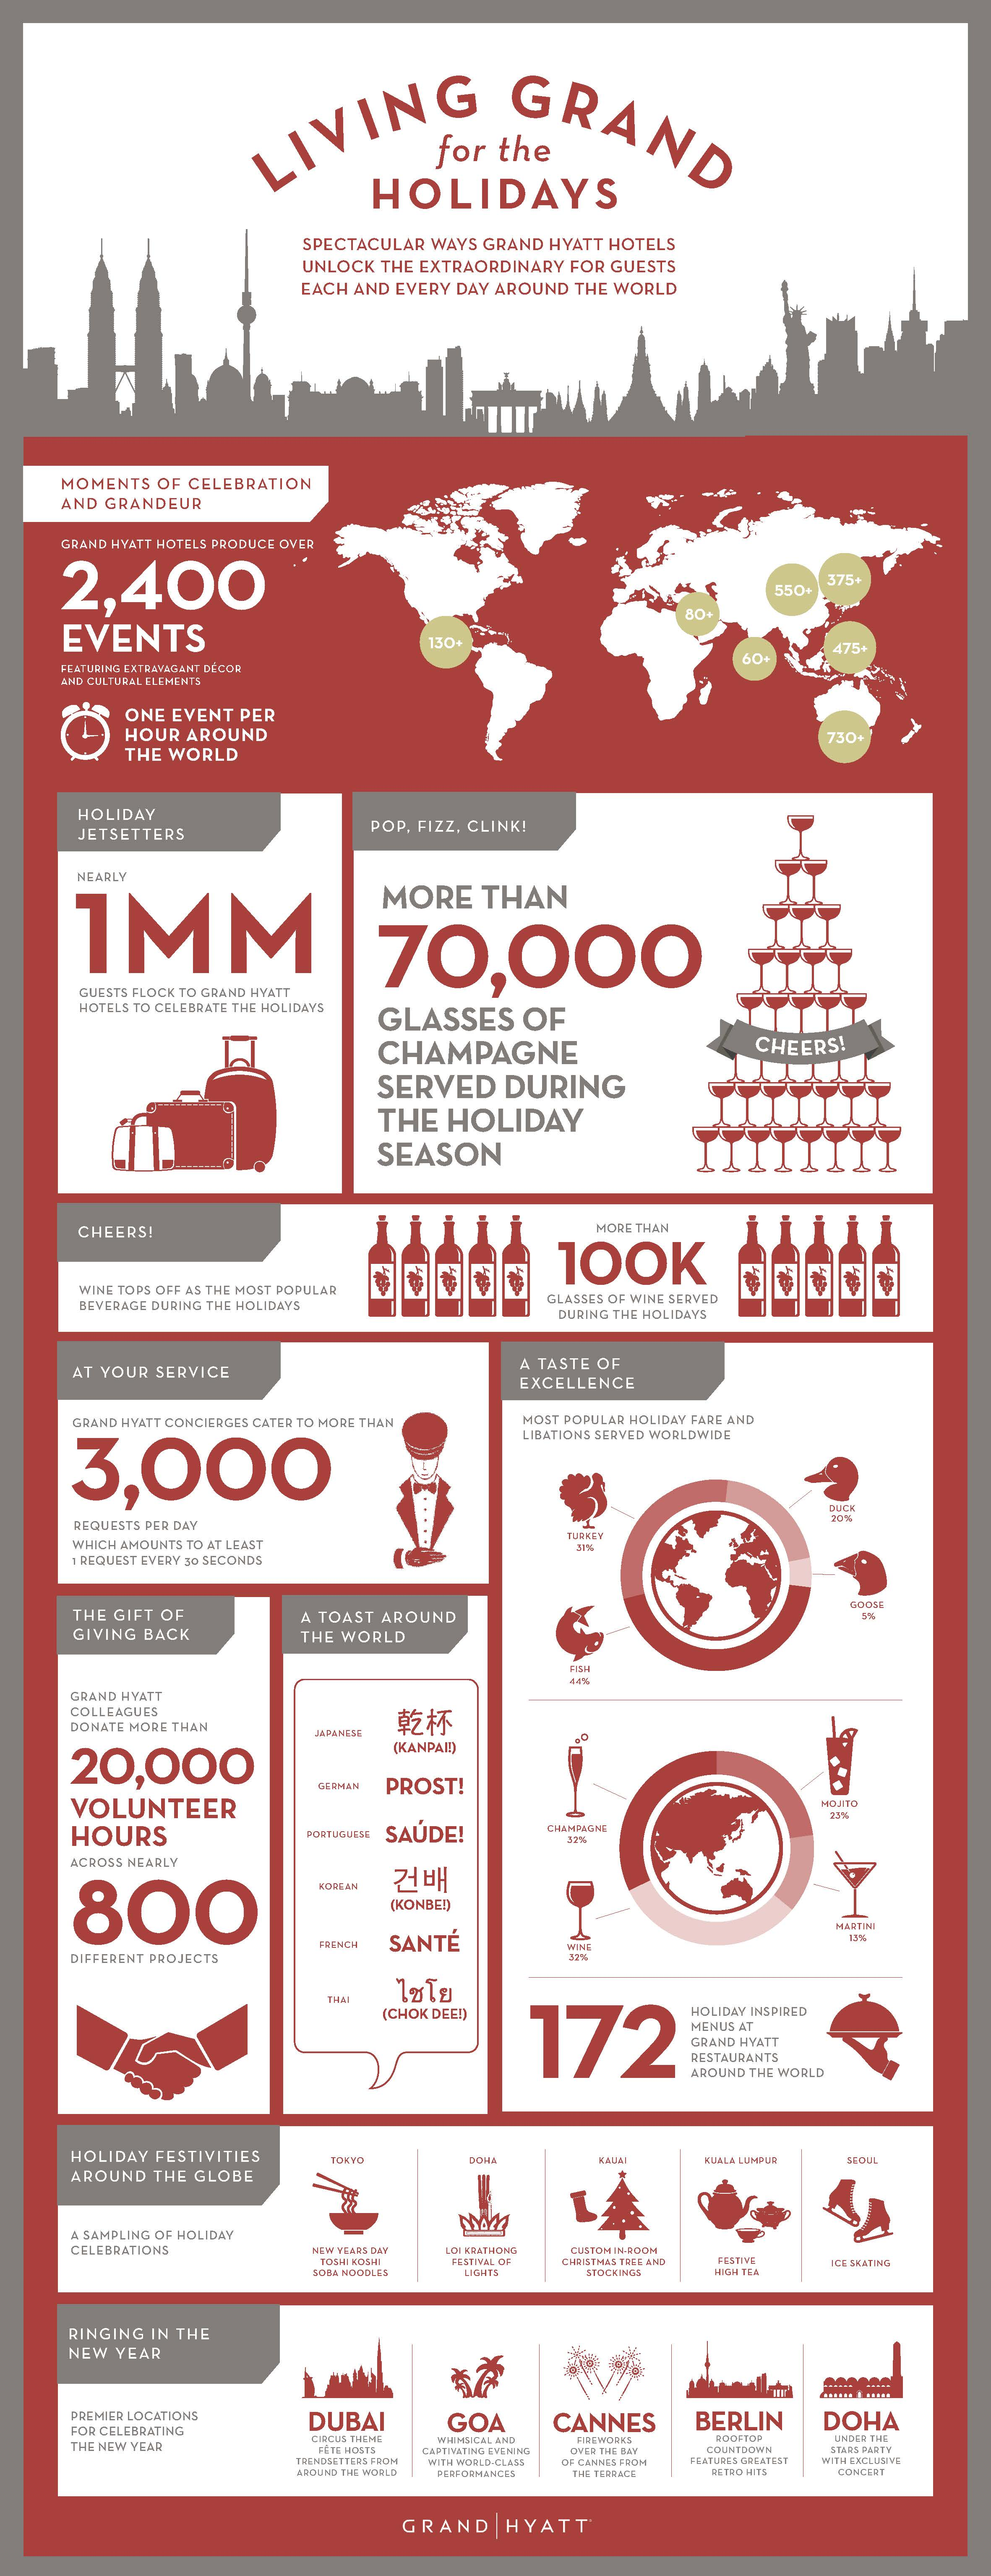 GrandHyatt_LivingGrandfortheHoliday_Infographic_Final